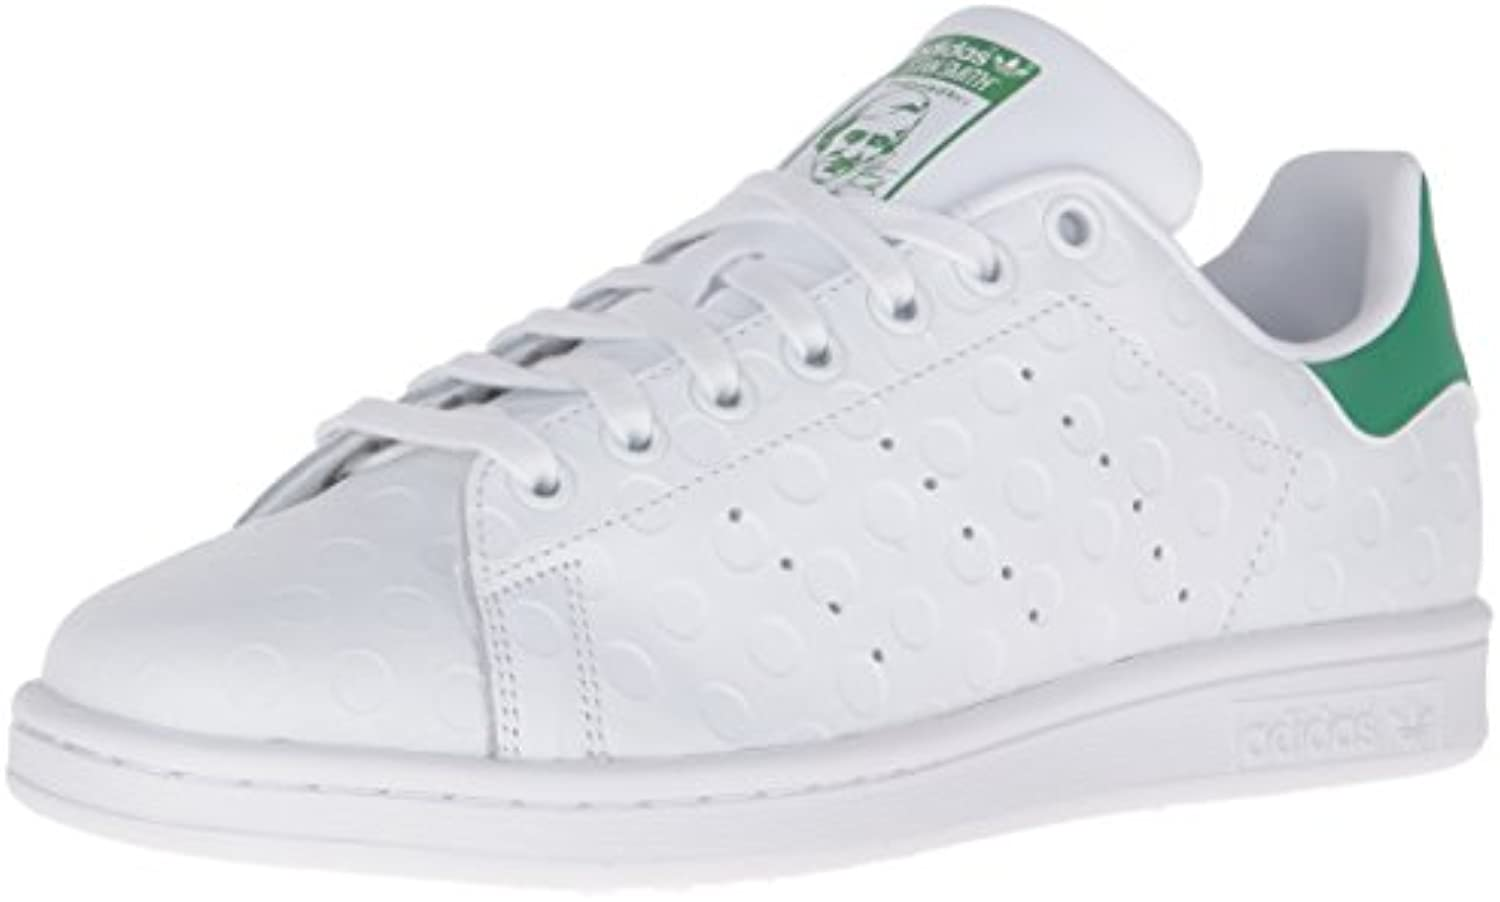 3aec855a1a4e adidas Originals Originals Originals Women s Shoes Stan Smith Fashion  Sneakers